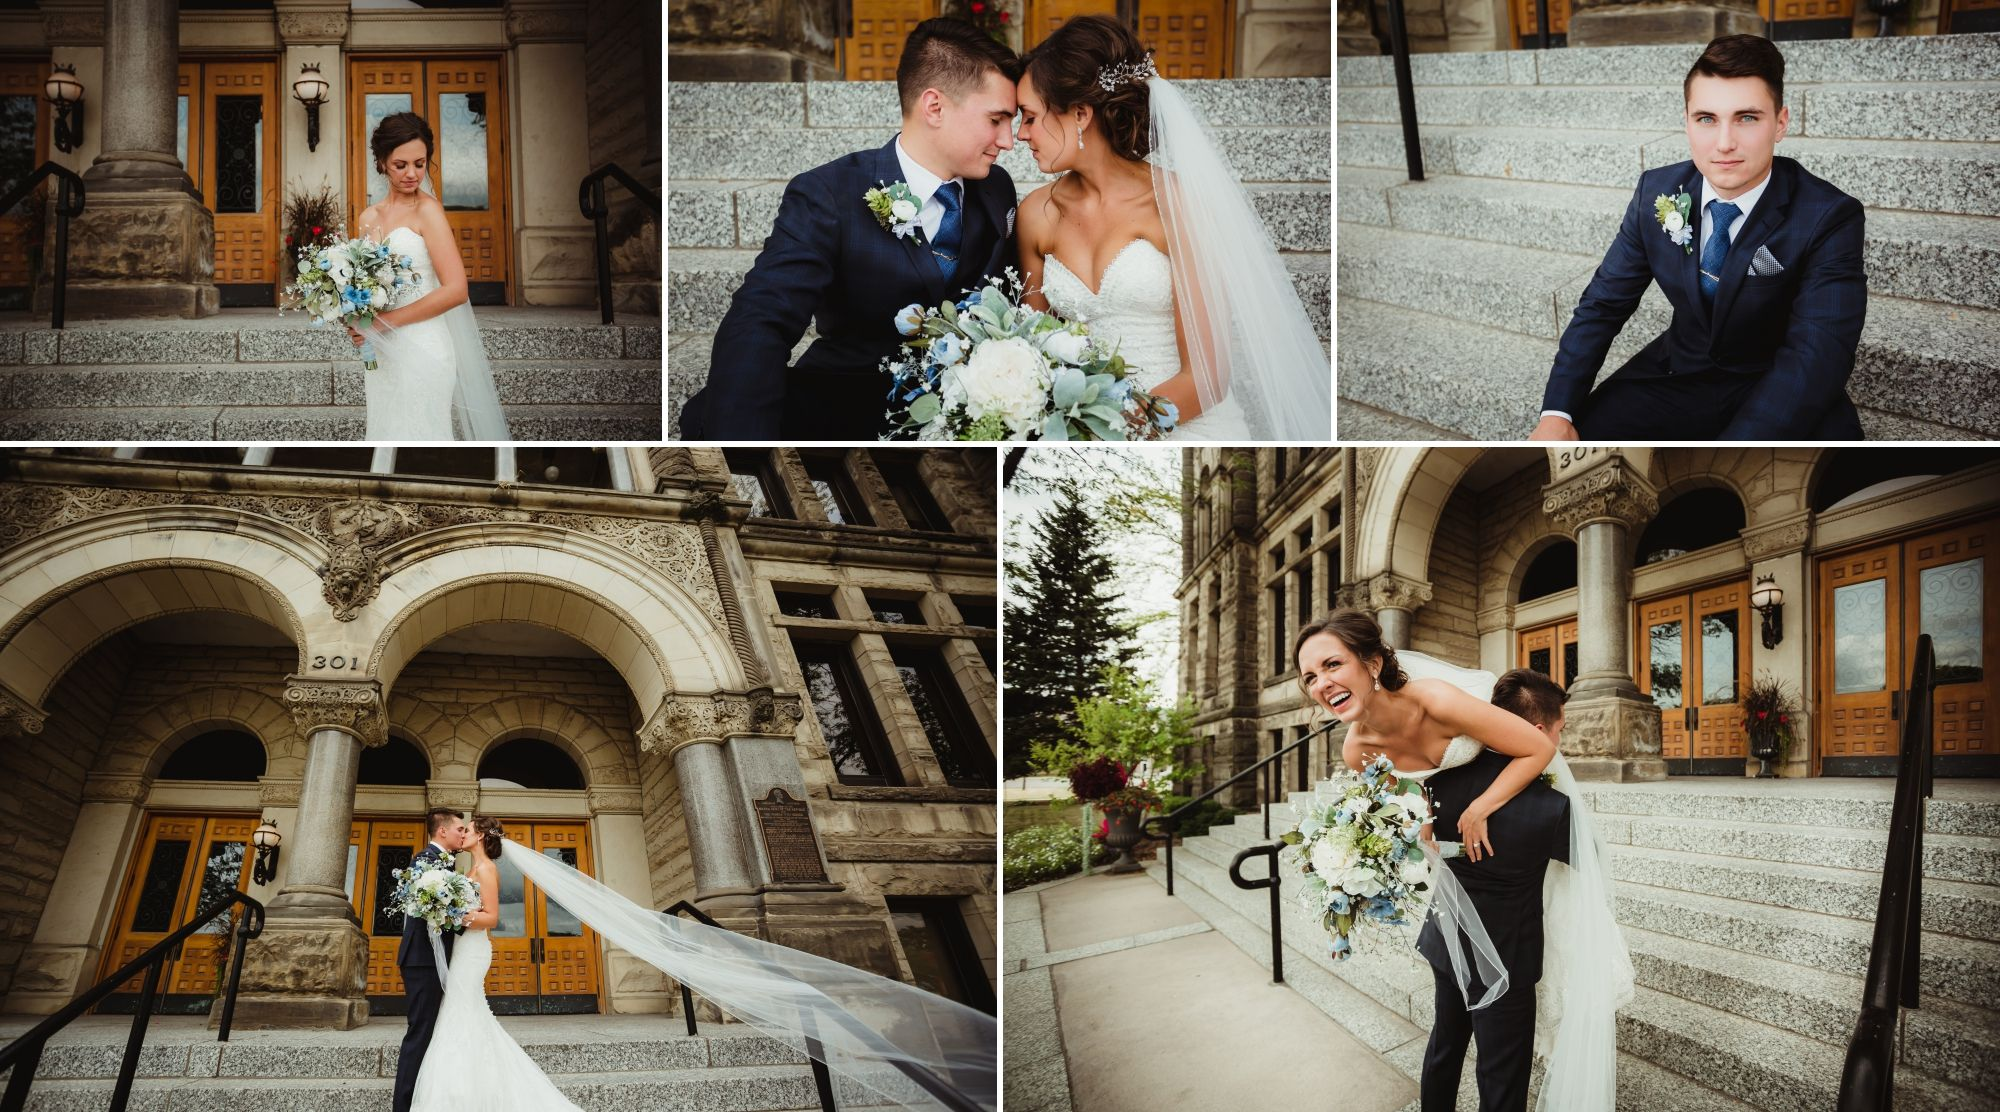 Collage of photos of the bride and groom by the courthouse steps in Bay City.